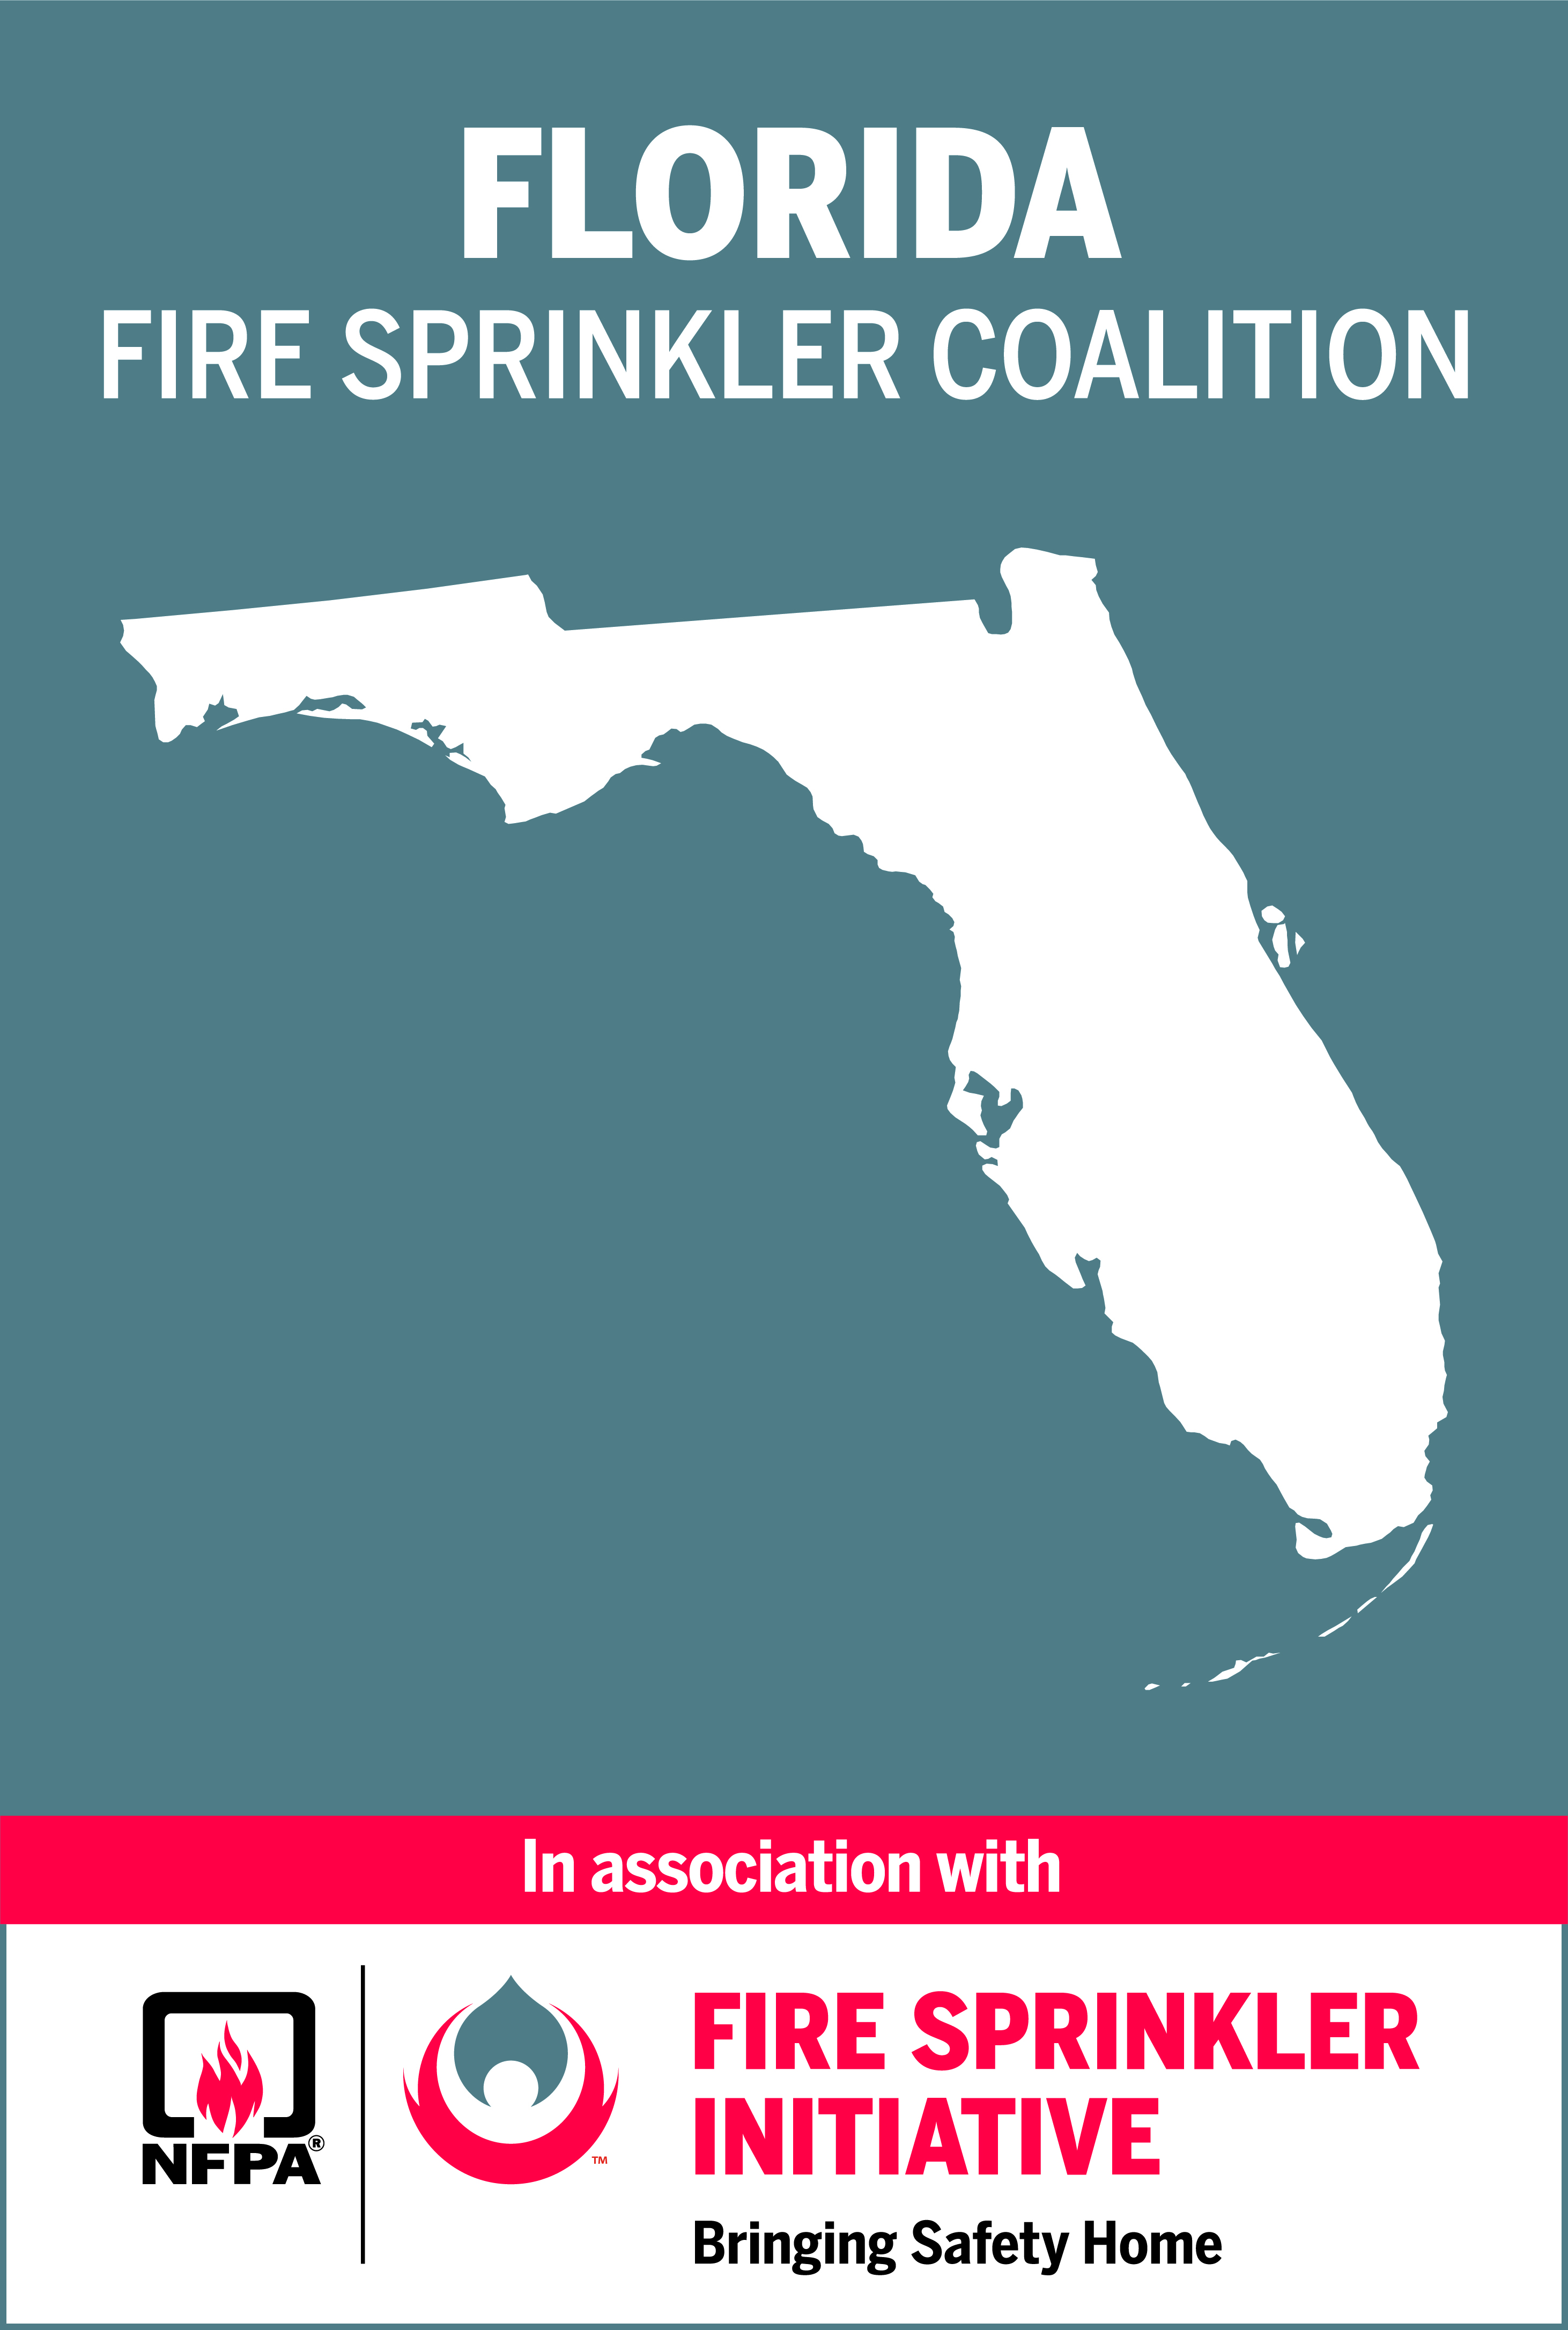 Florida Fire Sprinkler Coalition